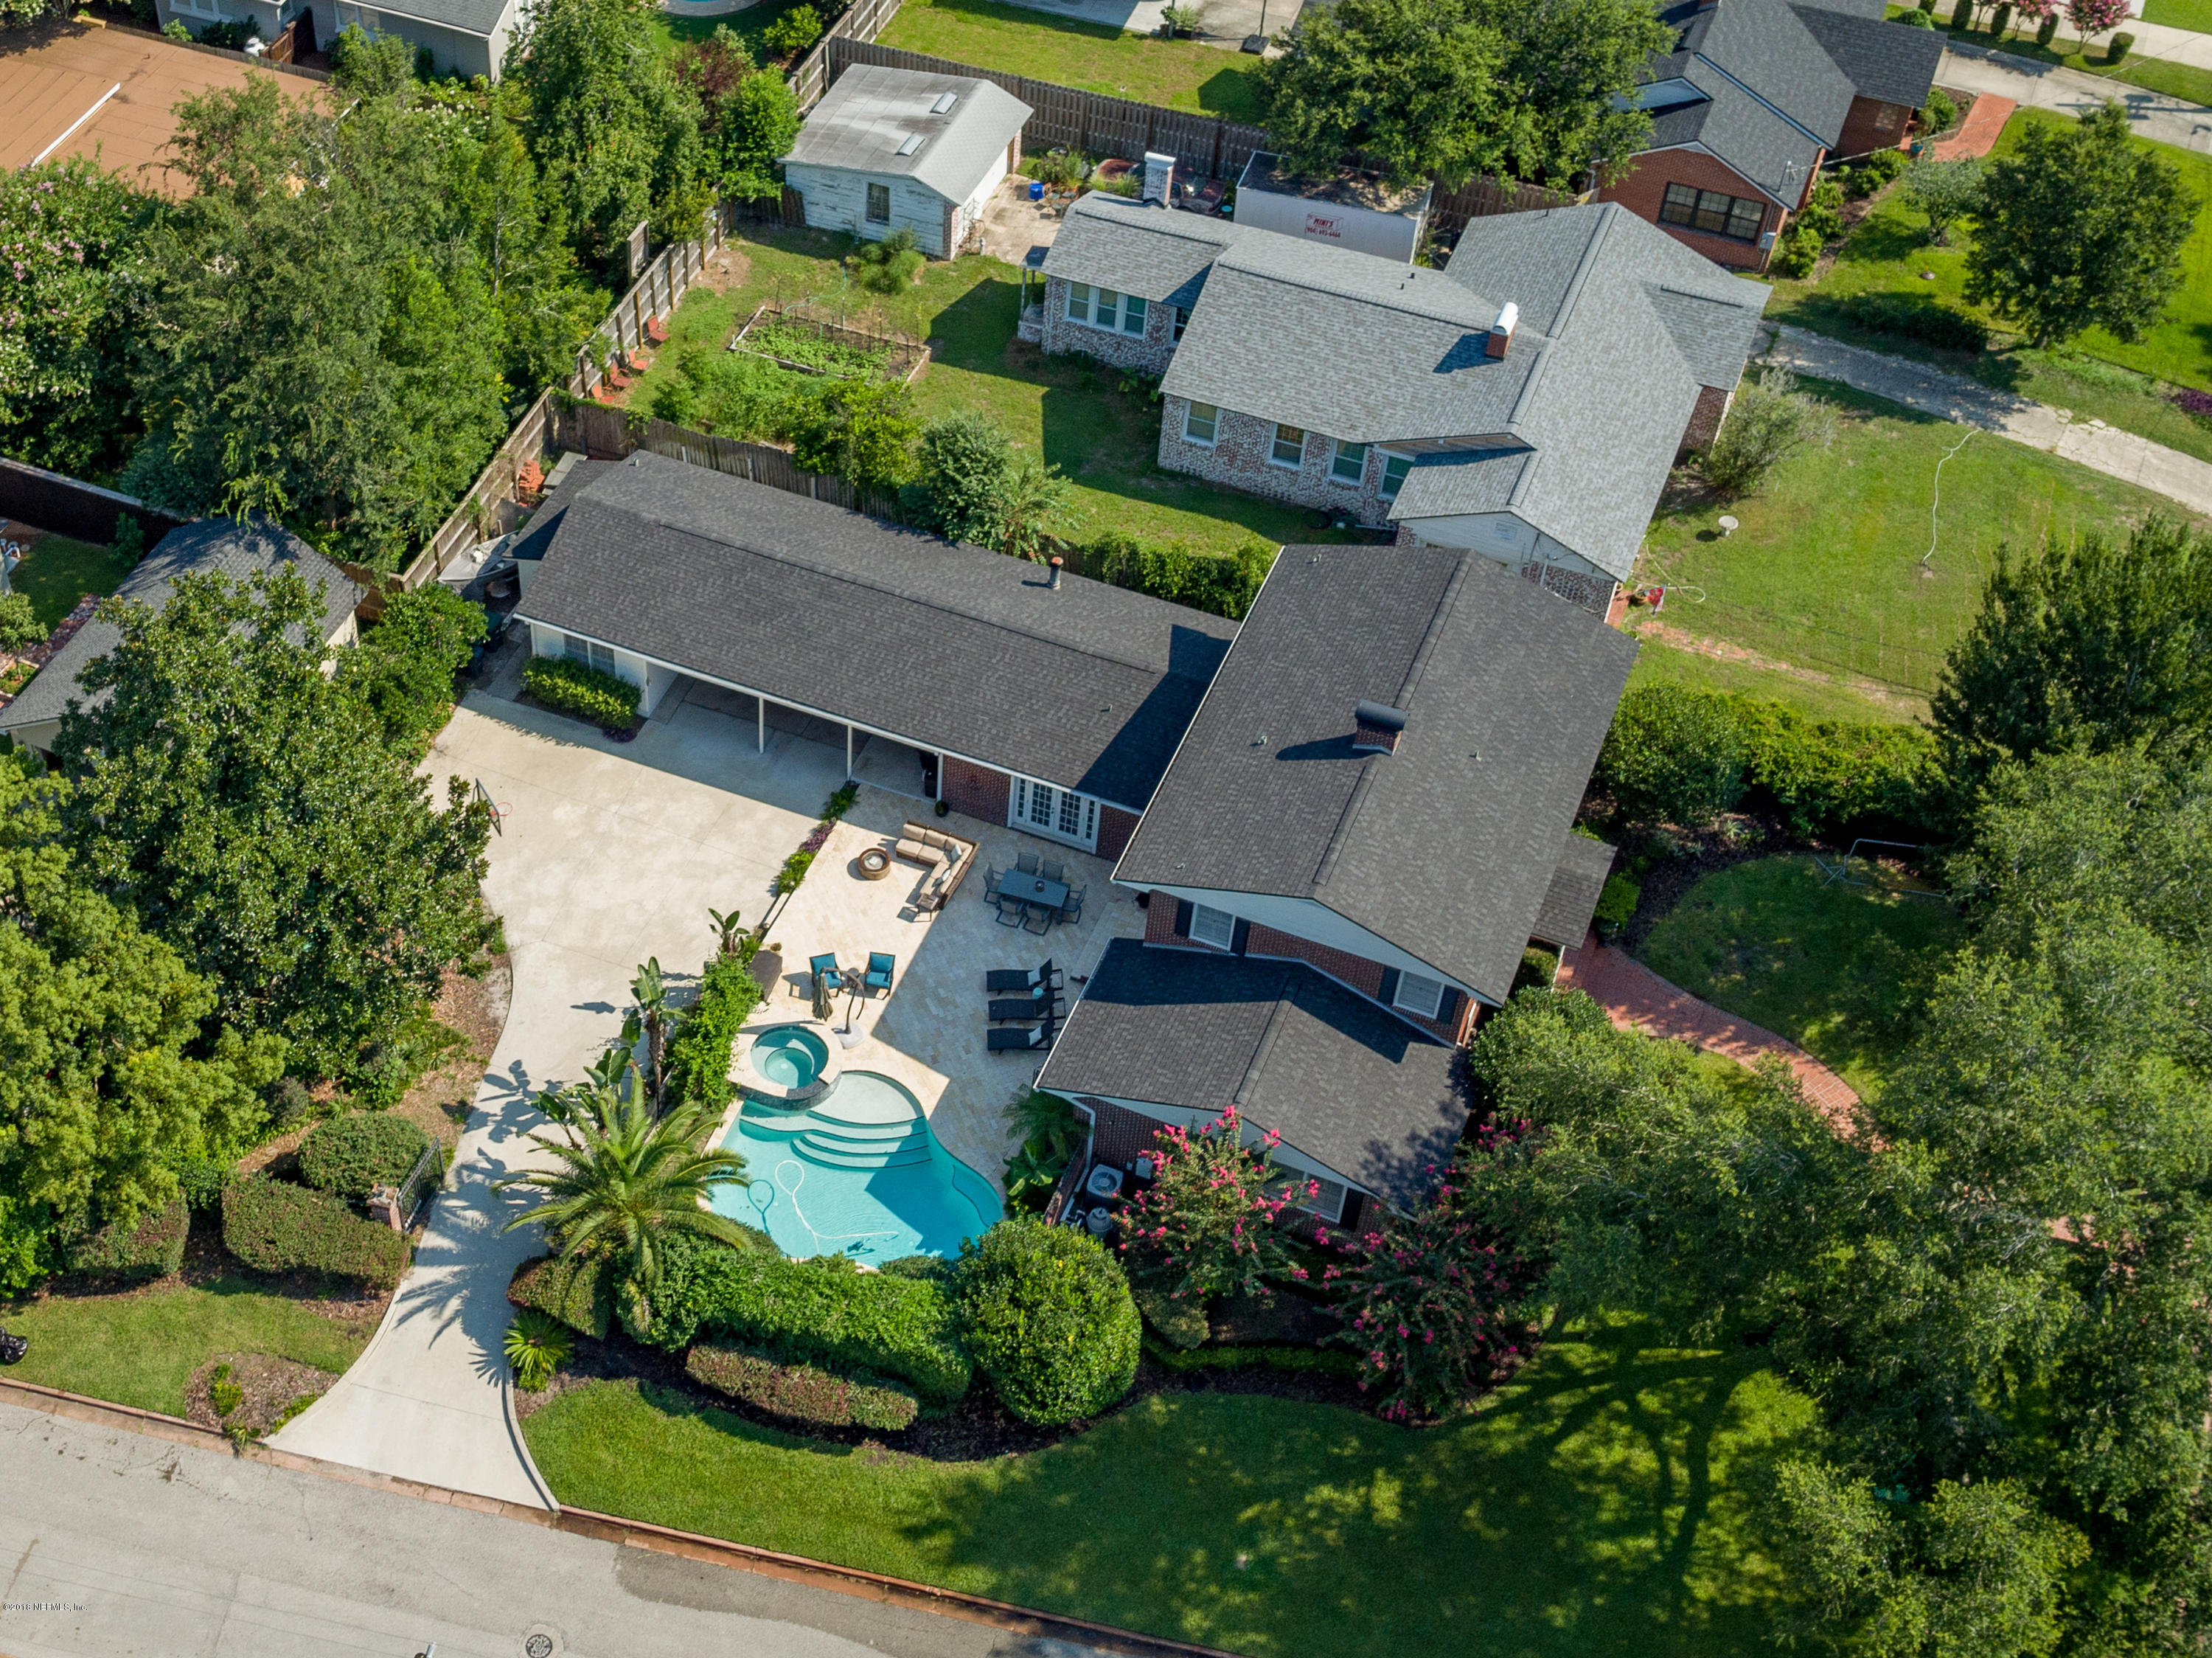 4070 BARCELONA, JACKSONVILLE, FLORIDA 32207, 5 Bedrooms Bedrooms, ,4 BathroomsBathrooms,Residential - single family,For sale,BARCELONA,959239